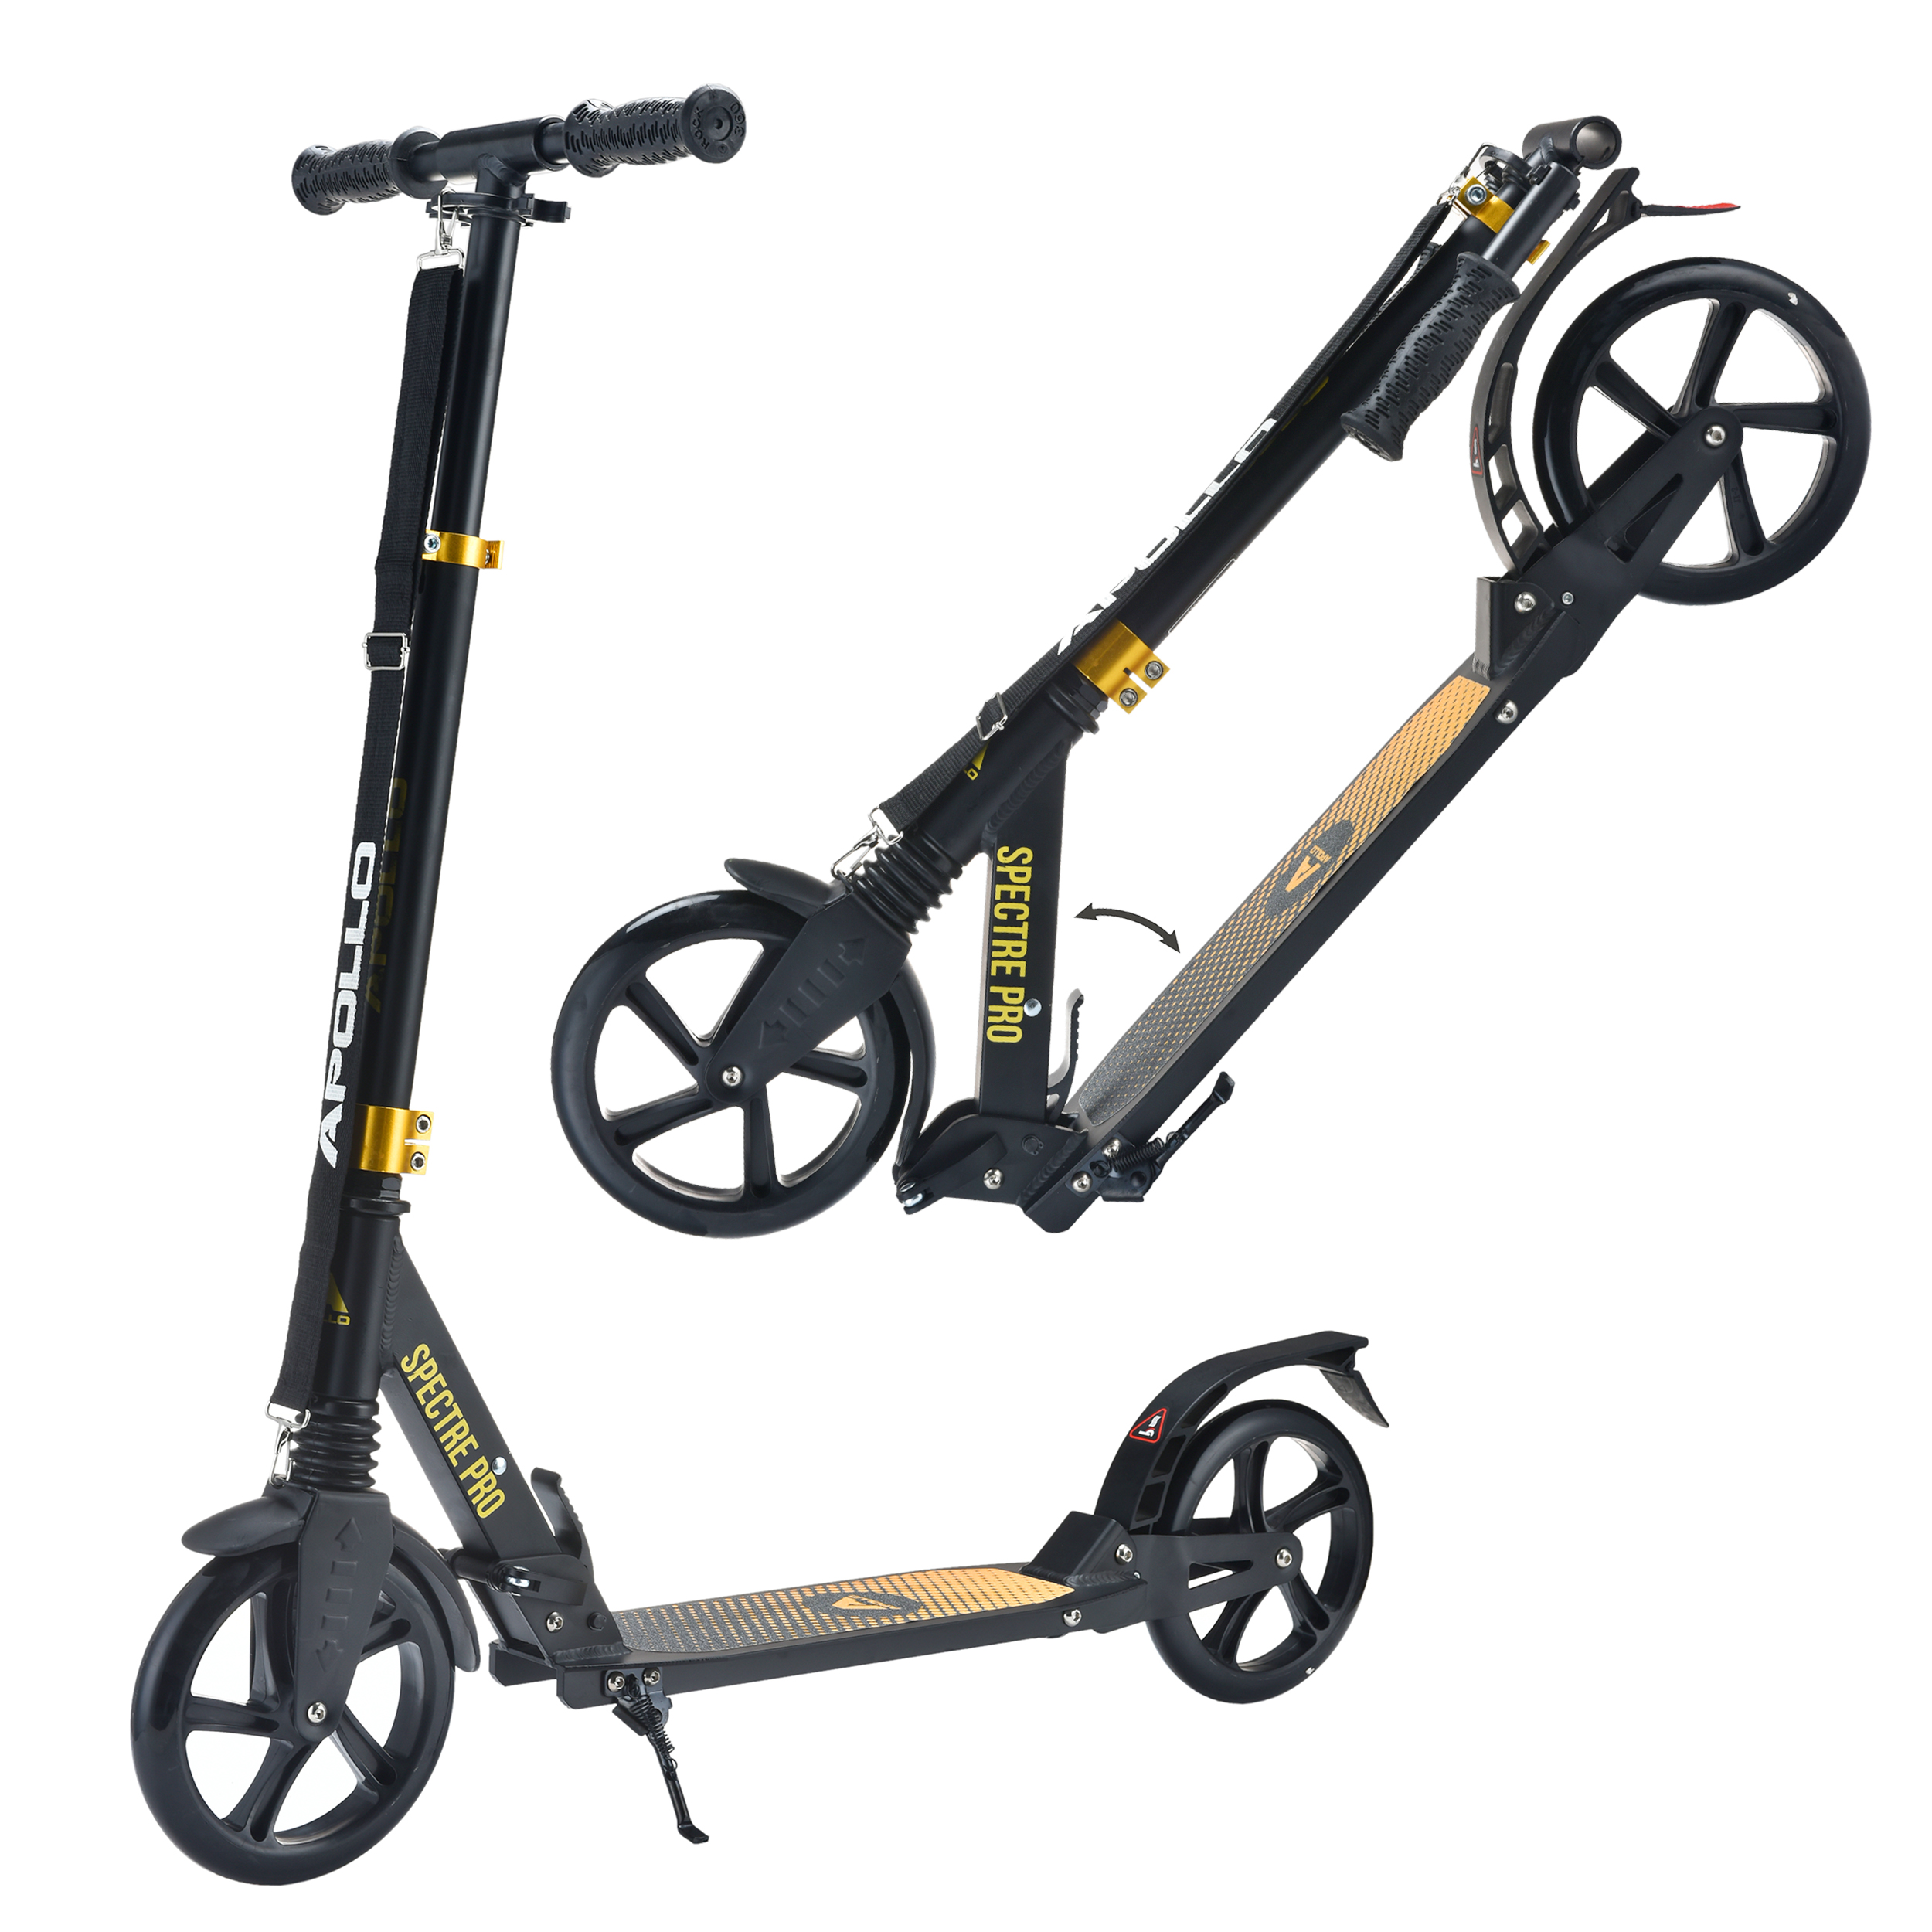 City Scooter - Spectre Pro - Black/Gold